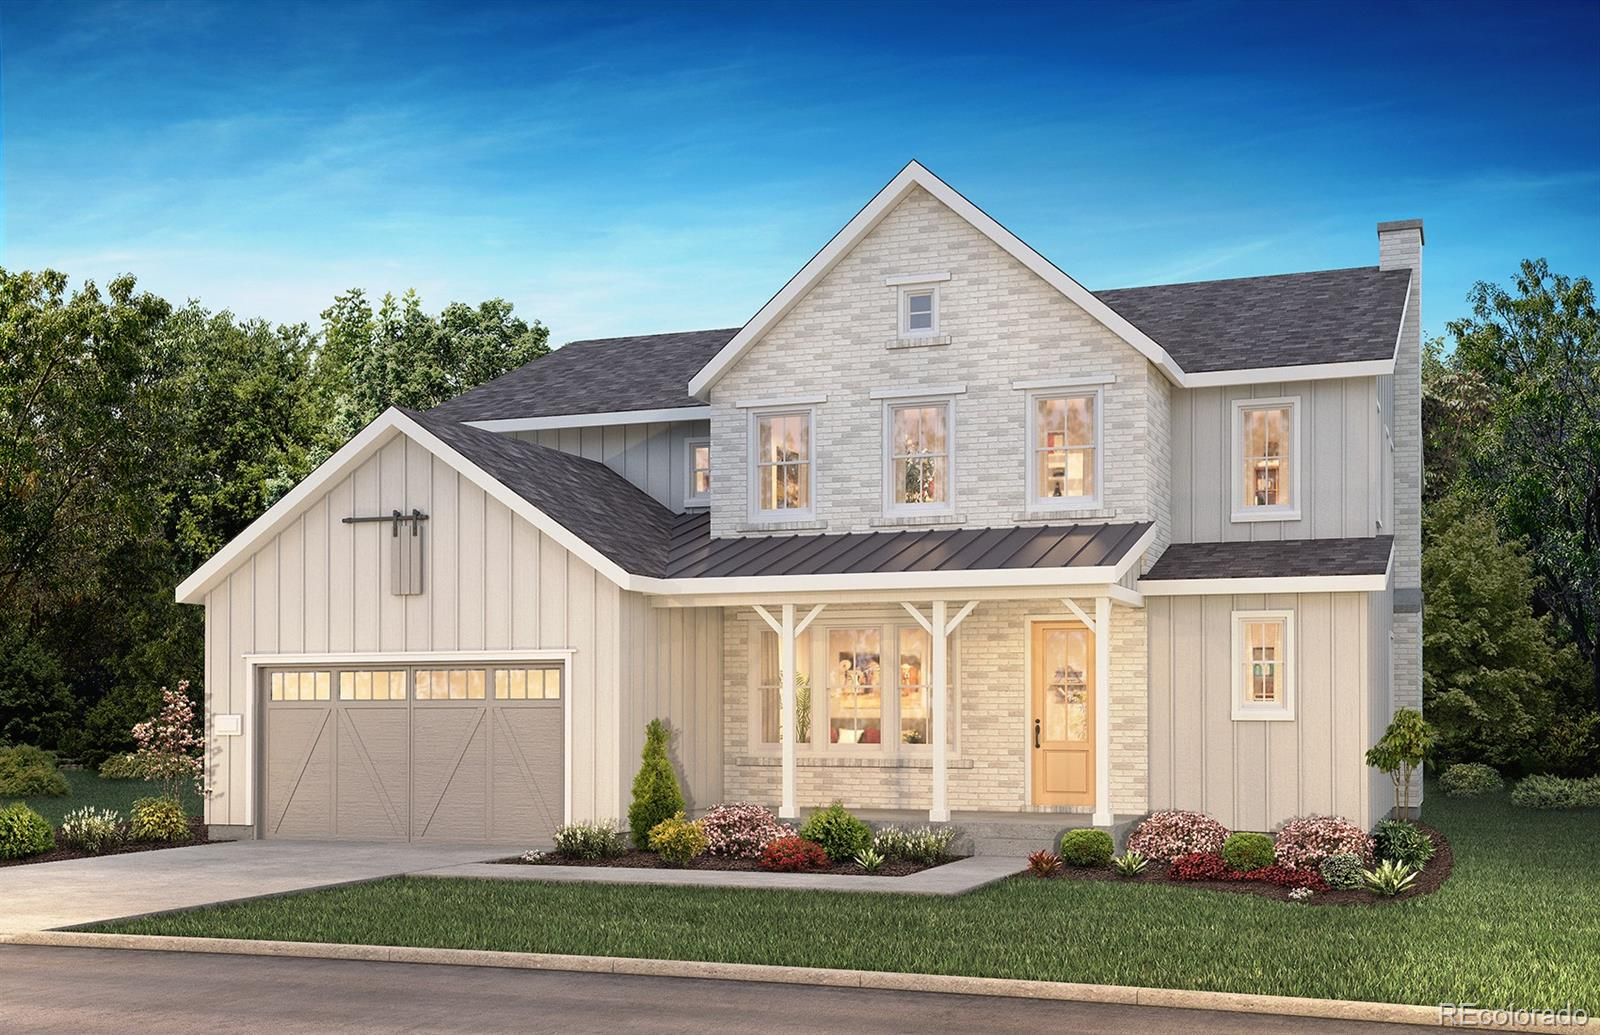 """Available April/May 2020! This stunning Stratton 2-story in The Canyons has it all.  Colorado living at its finest.  This gorgeous home features 6 beds (3 up / 1 main / 2 bsmt), 5.5 baths, main floor study, gourmet kitchen, great room, finished walk-out basement, 3 car (2 + 1 tandem) garage and so much more.  Beautiful upgrades and finishes throughout.  Finished basement with two bedrooms, full bath and media/rec room; 36"""" GE Cafe stainless steel gas appliances with French door refrigerator and Monogram beverage refrigerator; Aristokraft Brellin Purestyle White kitchen perimeter cabinetry; Aristokraft Winstead Maple Flagstone remaining home cabinetry;  Great room with full height Gray Oak stacked stone fireplace with mantel and multi-side door; Barn door at study and optional door at master bathroom; Large laundry room with sink and craftsman stair rails with iron balusters; Shaw Supino HDPllus Giardino wood-style laminate floors; Concerto engineered stone kitchen counters with full backsplash; Della Terra Denali counters at the kitchen island and master bath; Framed mirrors at the master and powder baths; Large loft on second level and a covered private master deck. This stunning home thoughtfully combines elegance and luxury. Don't miss your opportunity. Welcome Home!"""